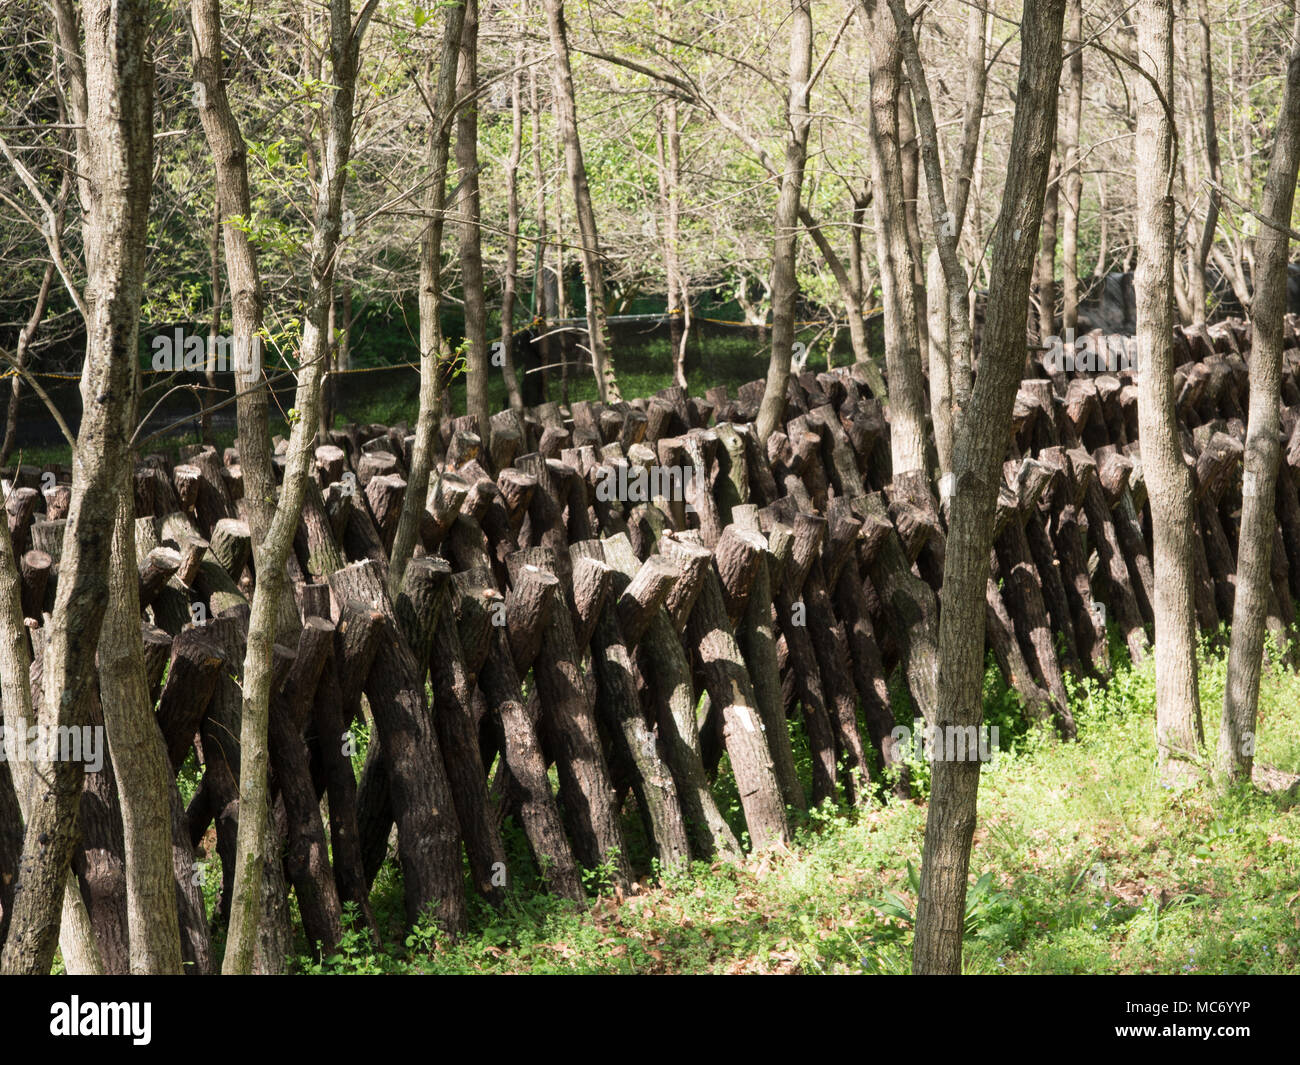 Shiitake mushroom cultivation on sawtooth oak logs, Kunisaki, Oita, Kyushu, Japan - Stock Image